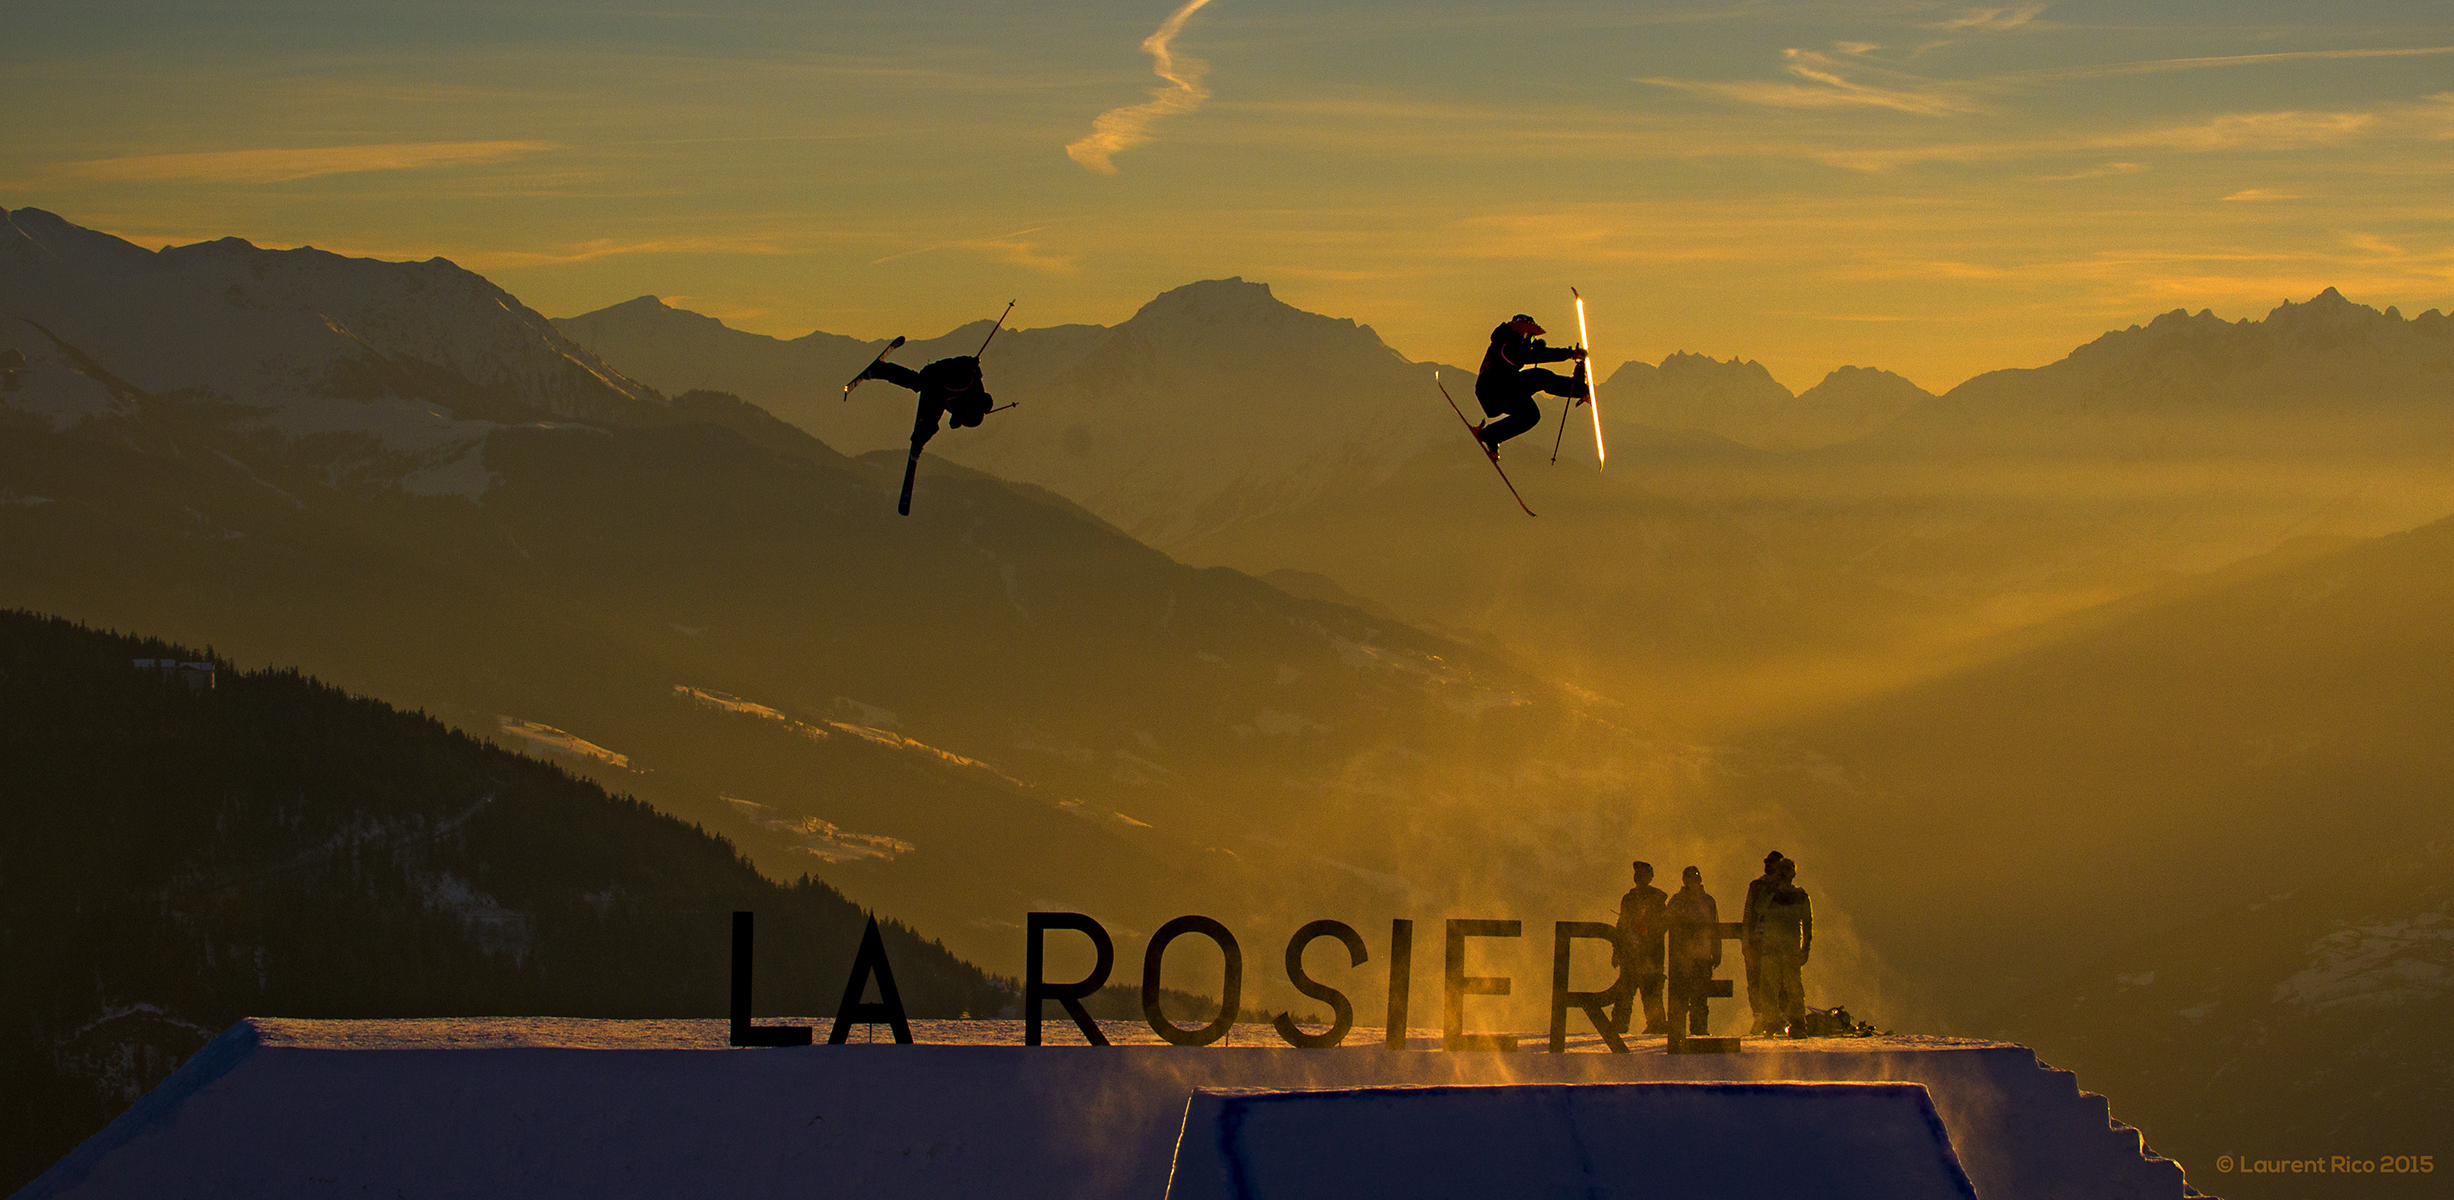 laurent rico-production- photographe-realisateur-reportage-evenementiel-freeski-playoffs-quentine ladame-nathan gaidet-la rosiere-stations-savoie-grenoble-